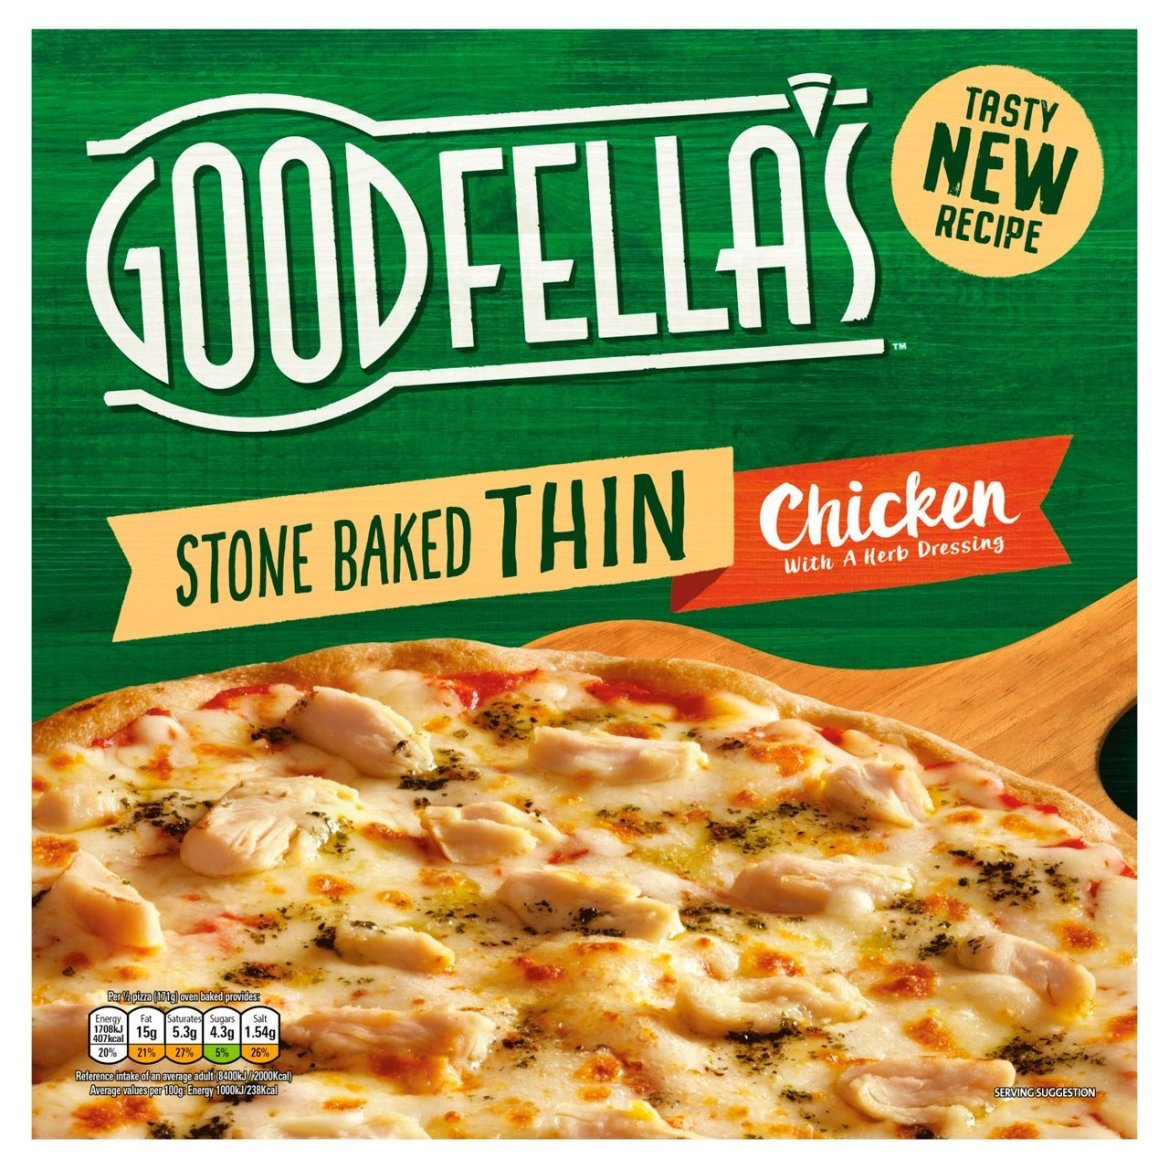 Head to groceries.morrisons.com to get a second Goodfella's pizza for free